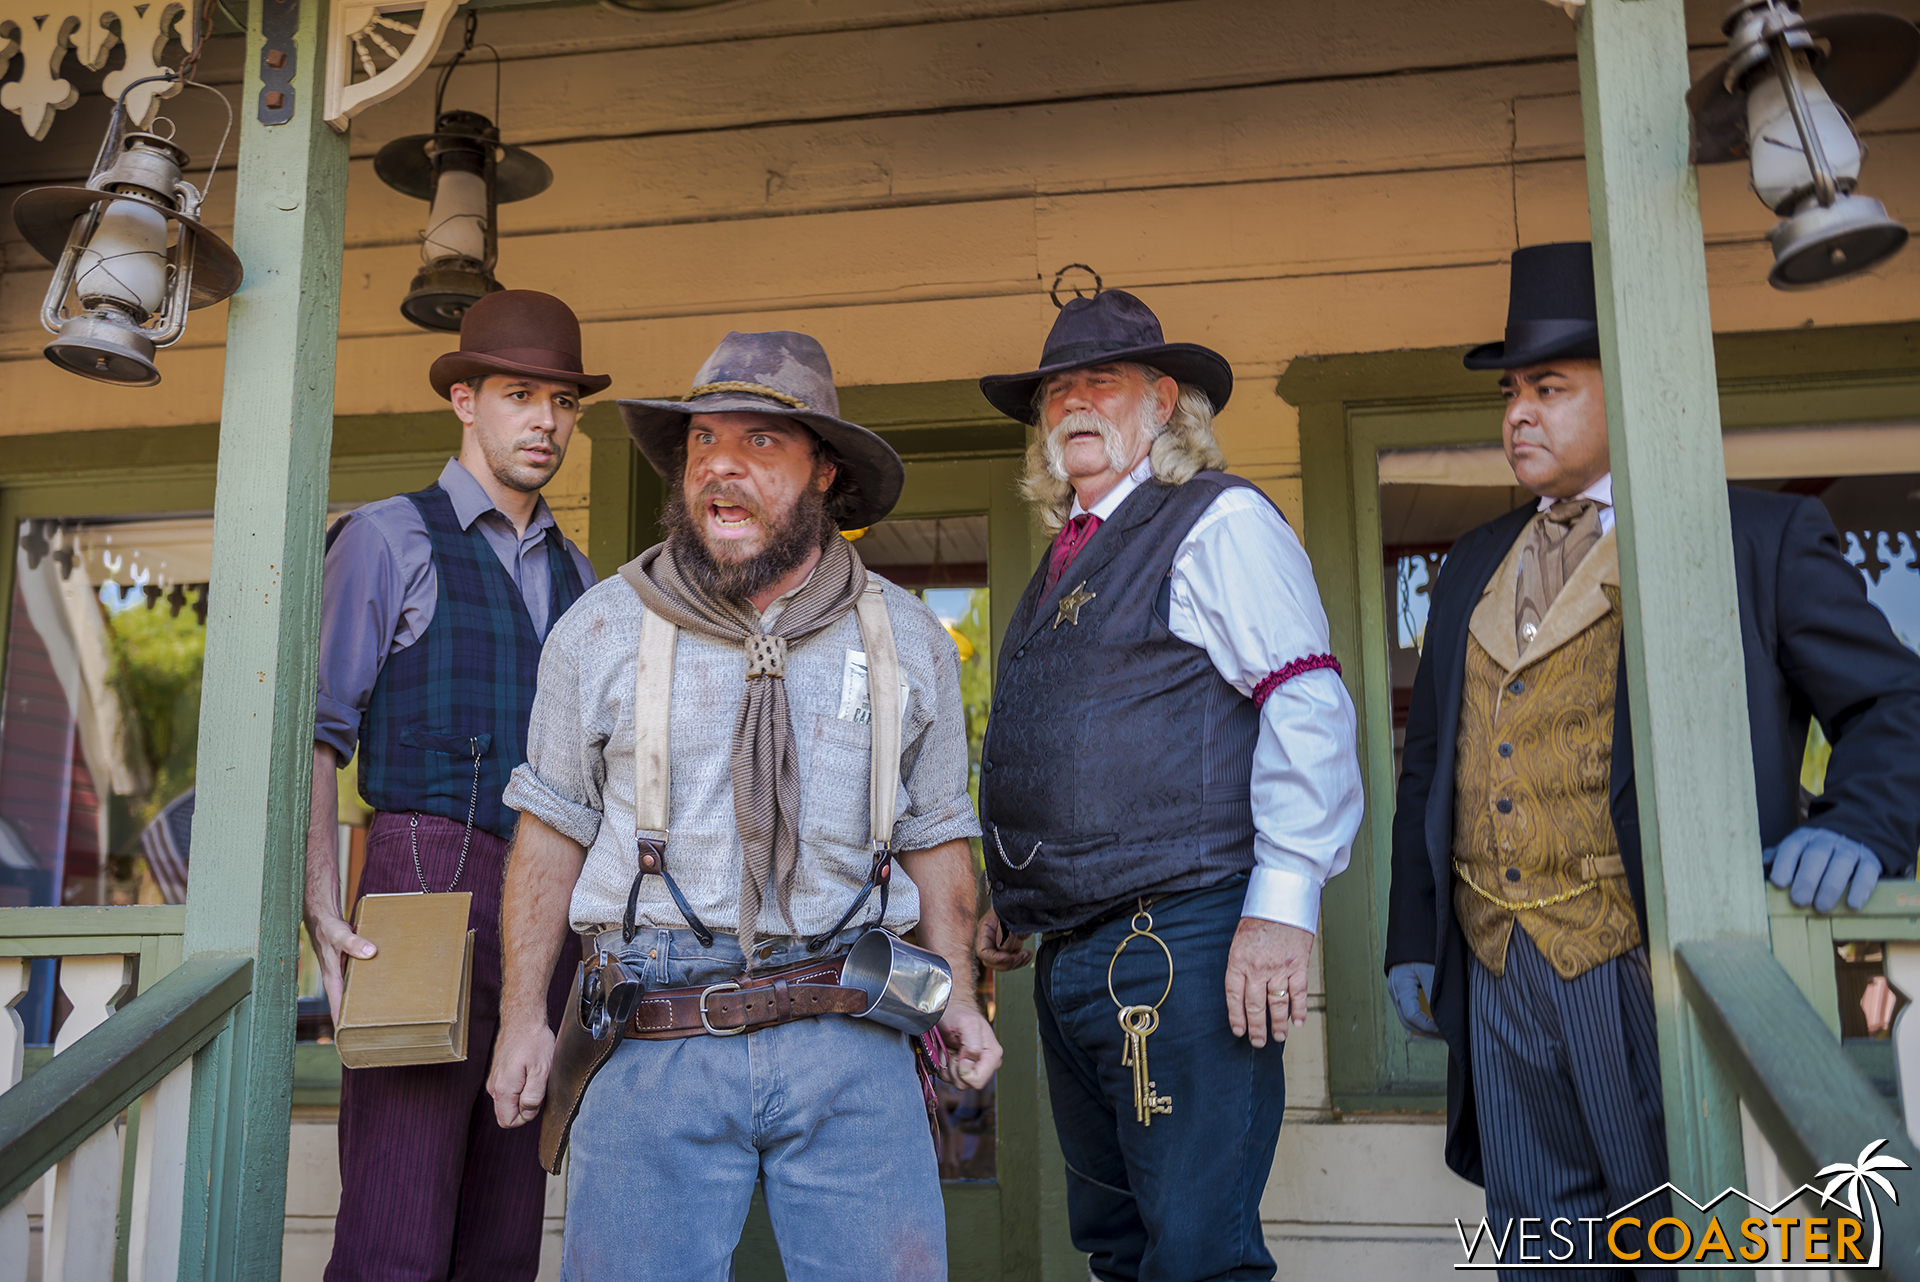 Tiny cannot help but make his displeasure known and even accuses Sheriff Wheeler of being responsible for throwing Mudd Mayfield to his death last year while pursuing Ox Mayfield and the stolen steam engine--a claim that the Sheriff rejects and attributes to an unfortunate accident.